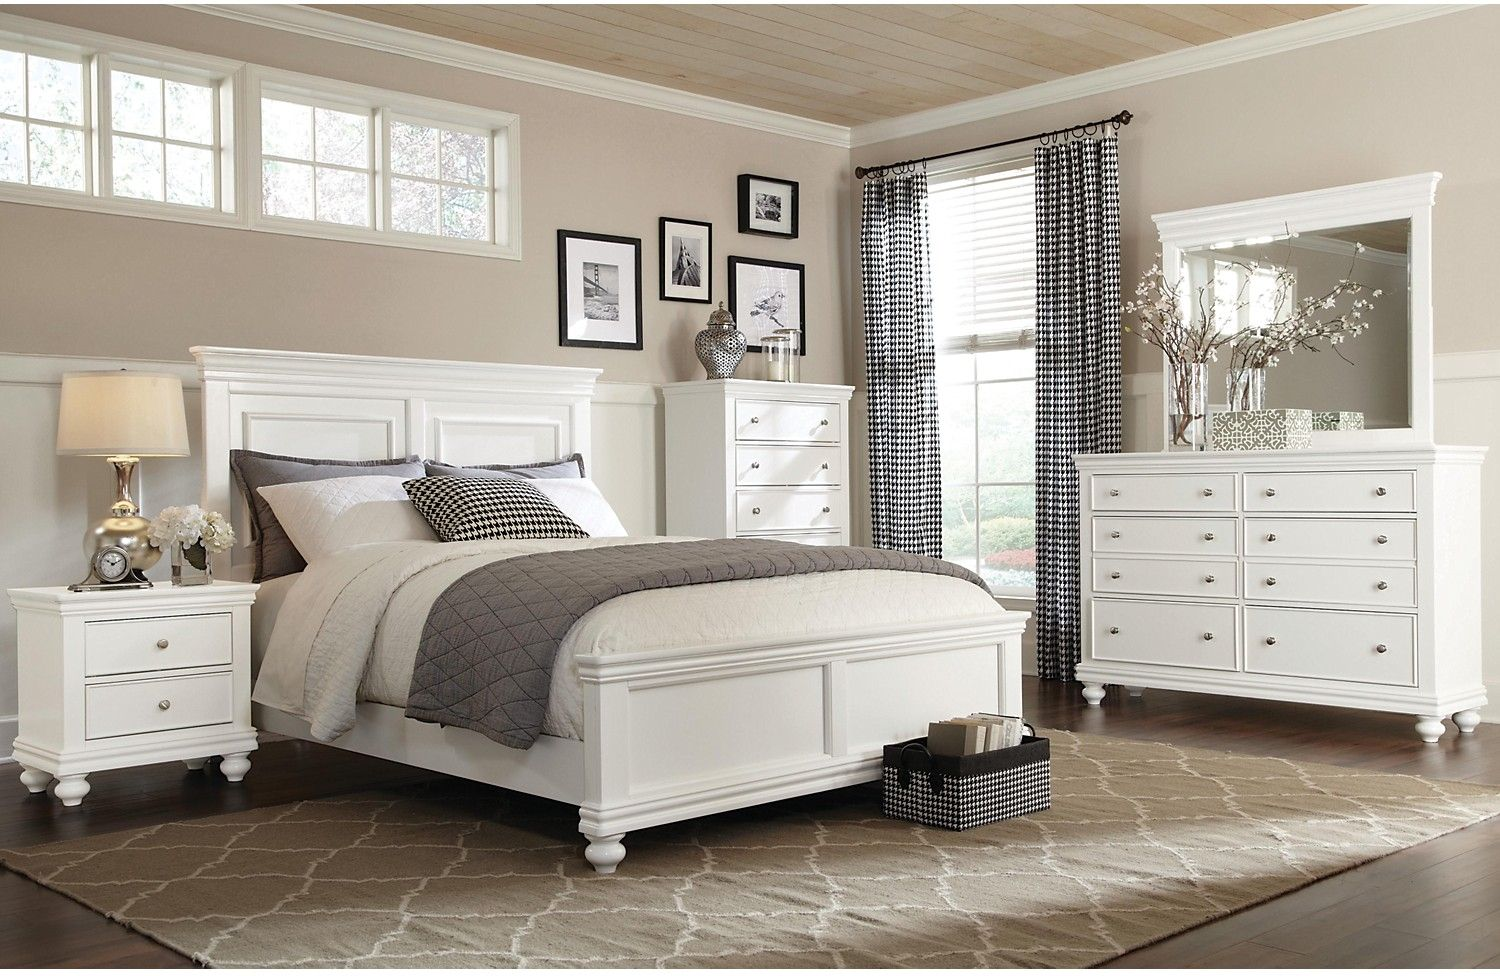 Bridgeport 6-Piece Queen Bedroom Set – White in 2019 | 2442 Bristol ...